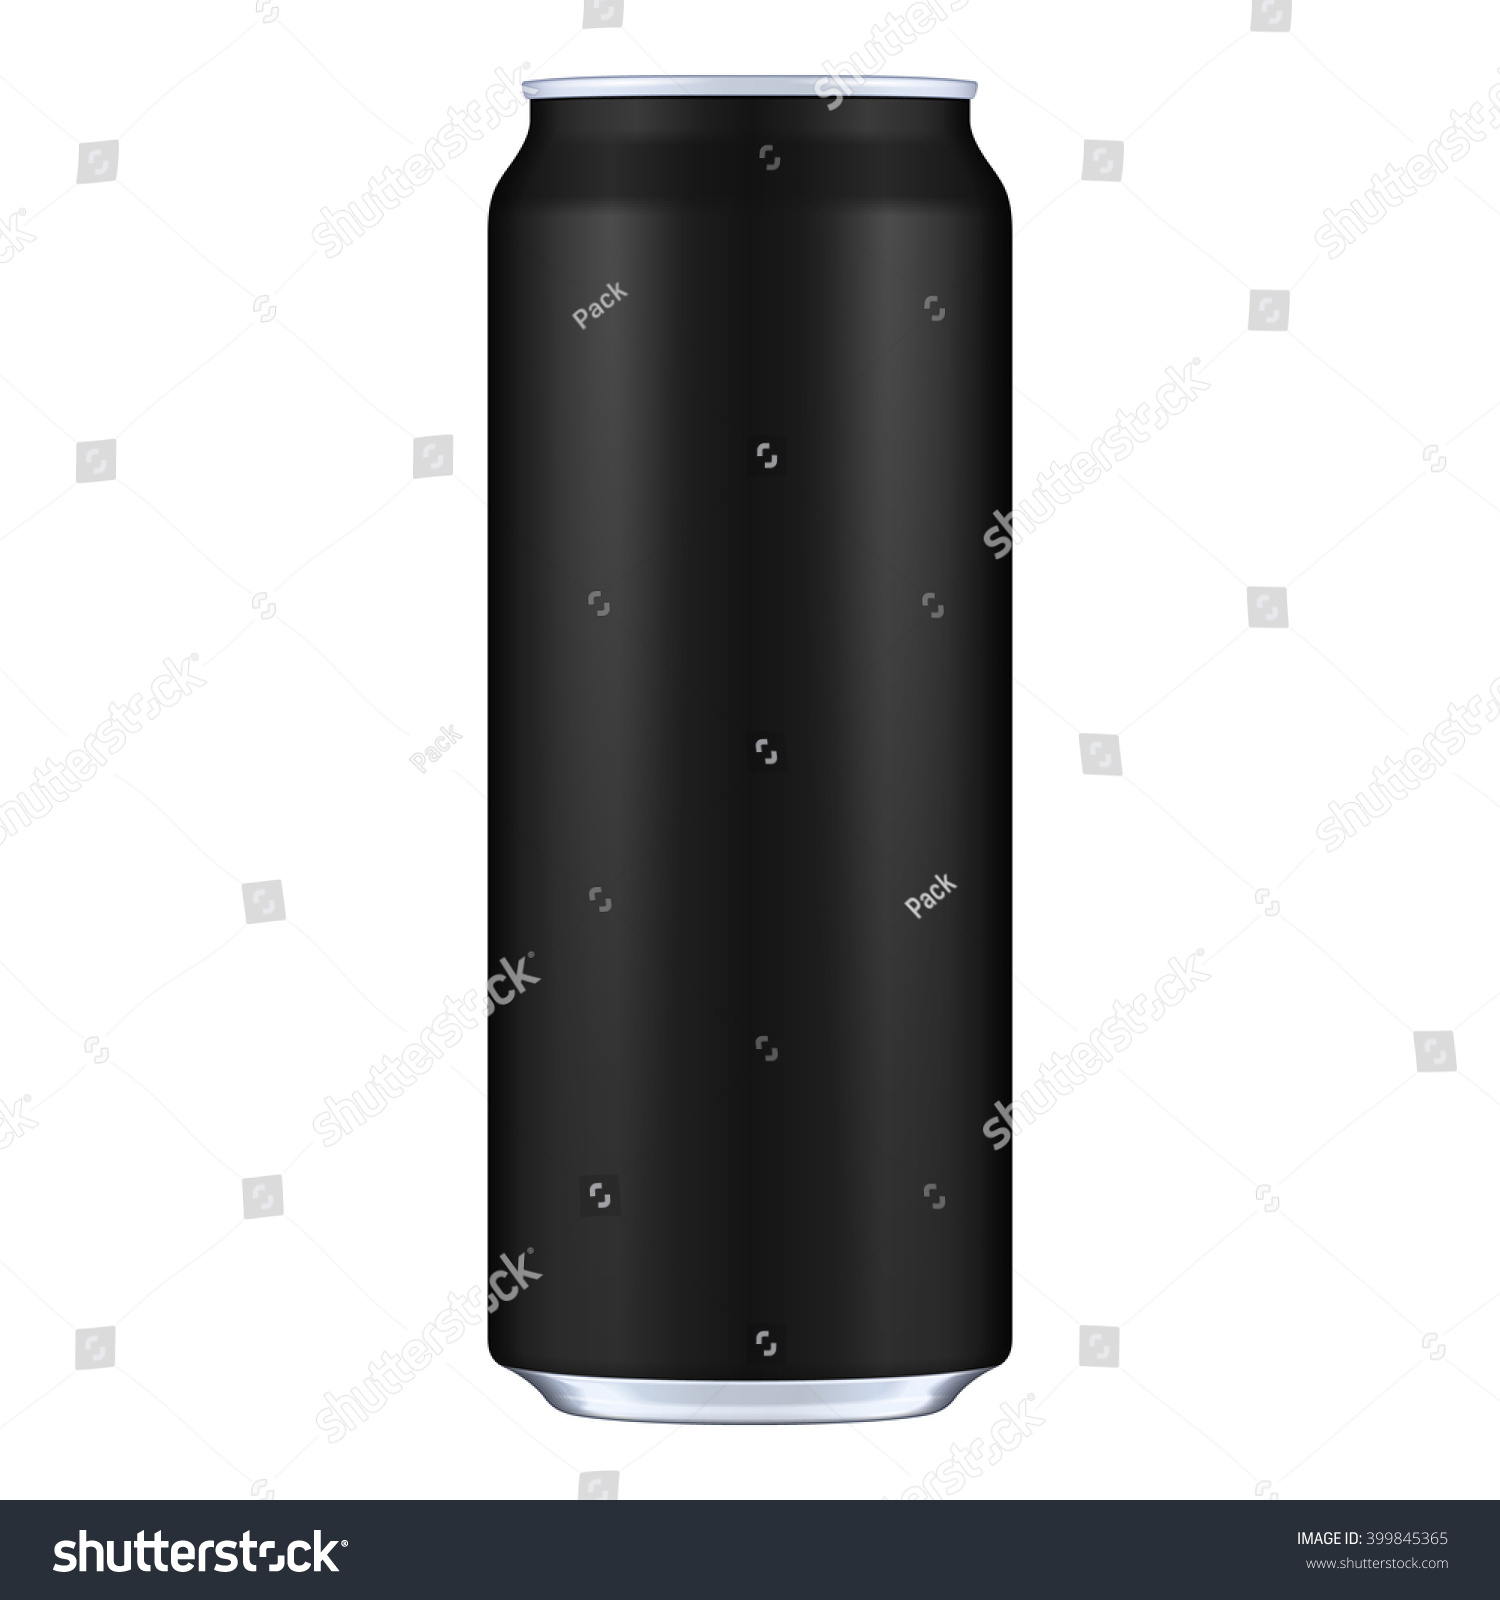 Black Metal Aluminum Beverage Drink Can Vector de stock (libre de ...